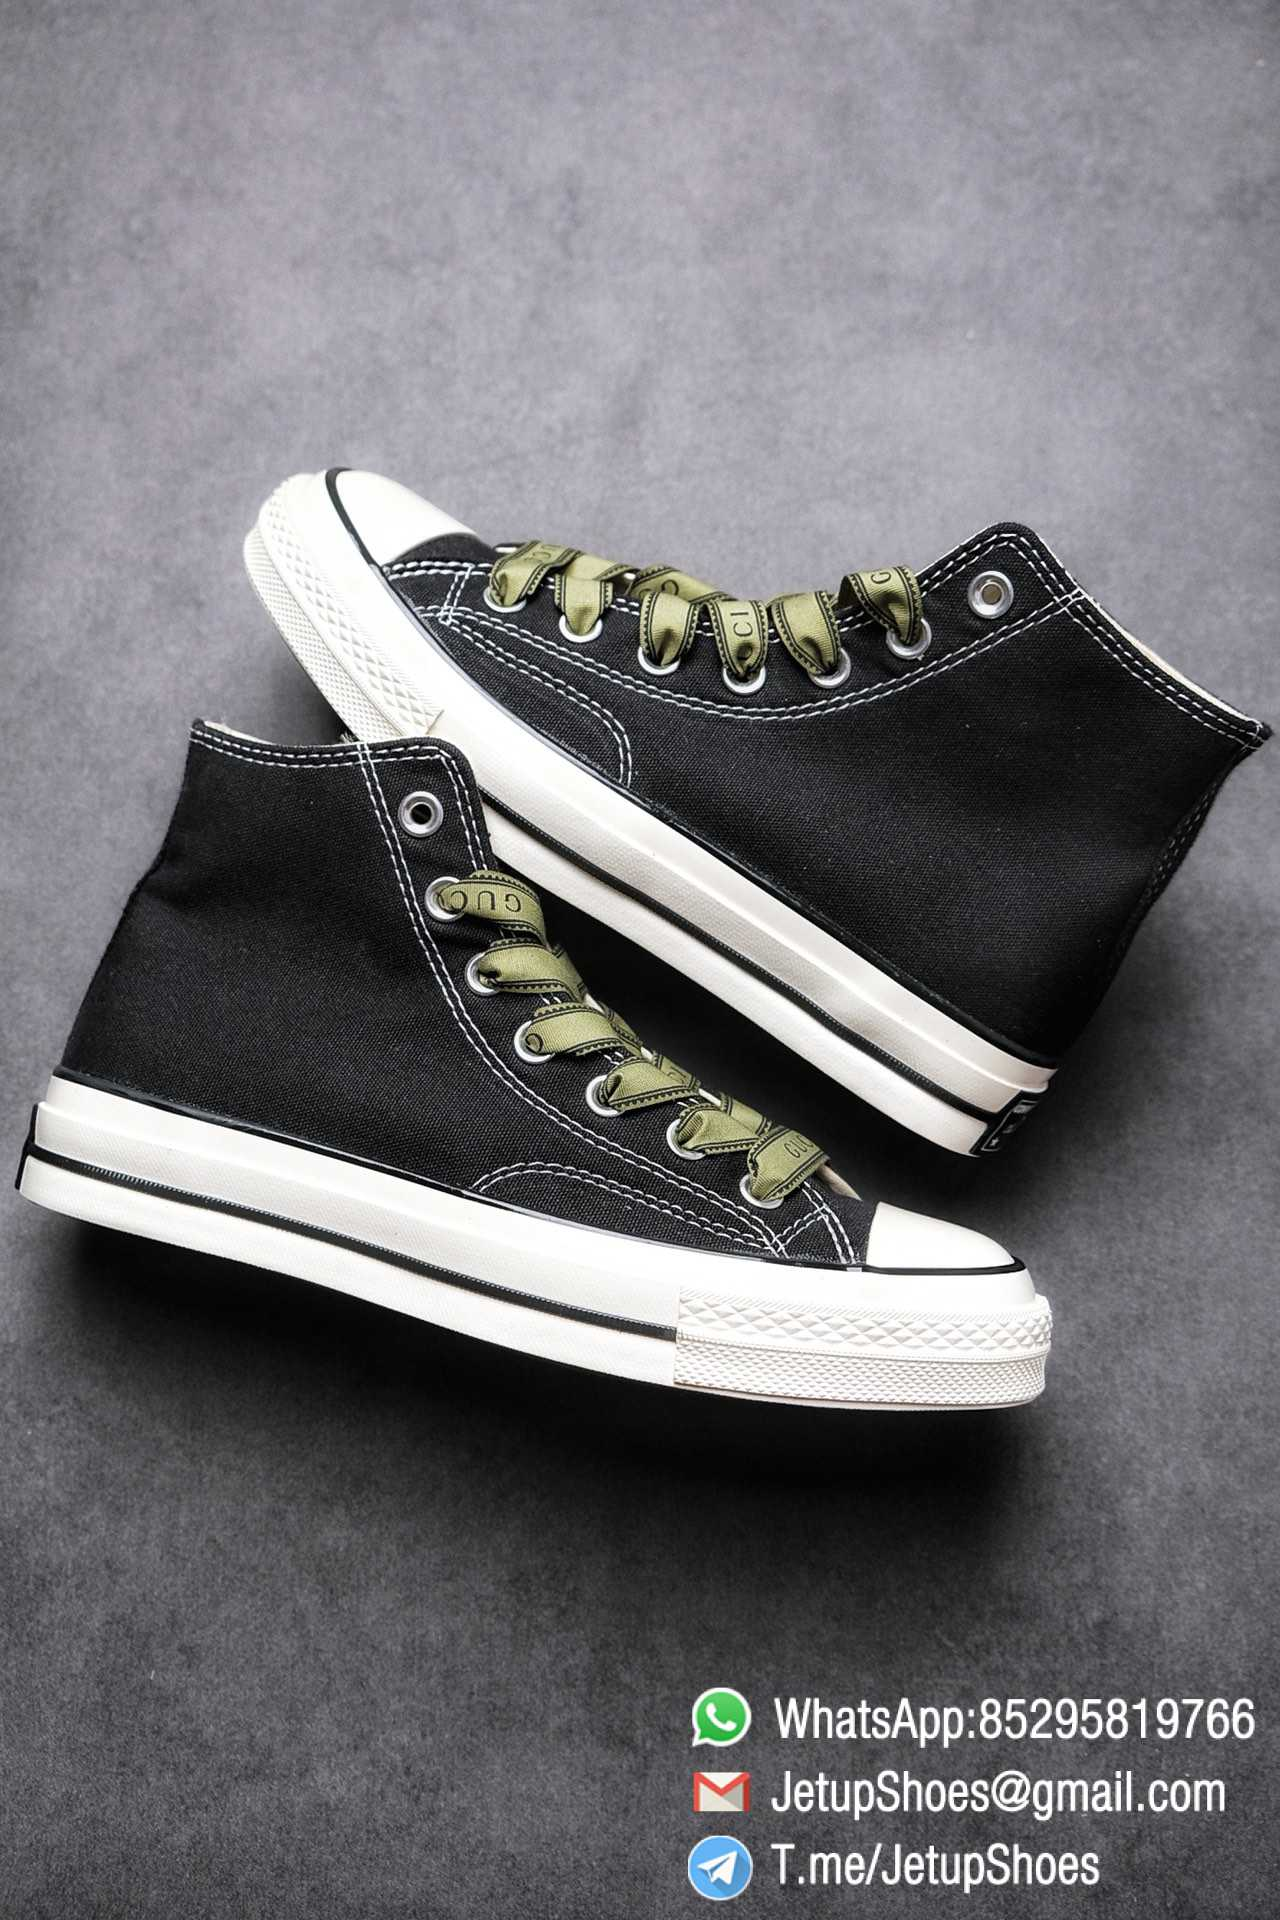 Womens Converse x Gucci Tennis 1970S High Top Sneaker Vintage Inspired Green Shoelace Black 2021 Spring 09